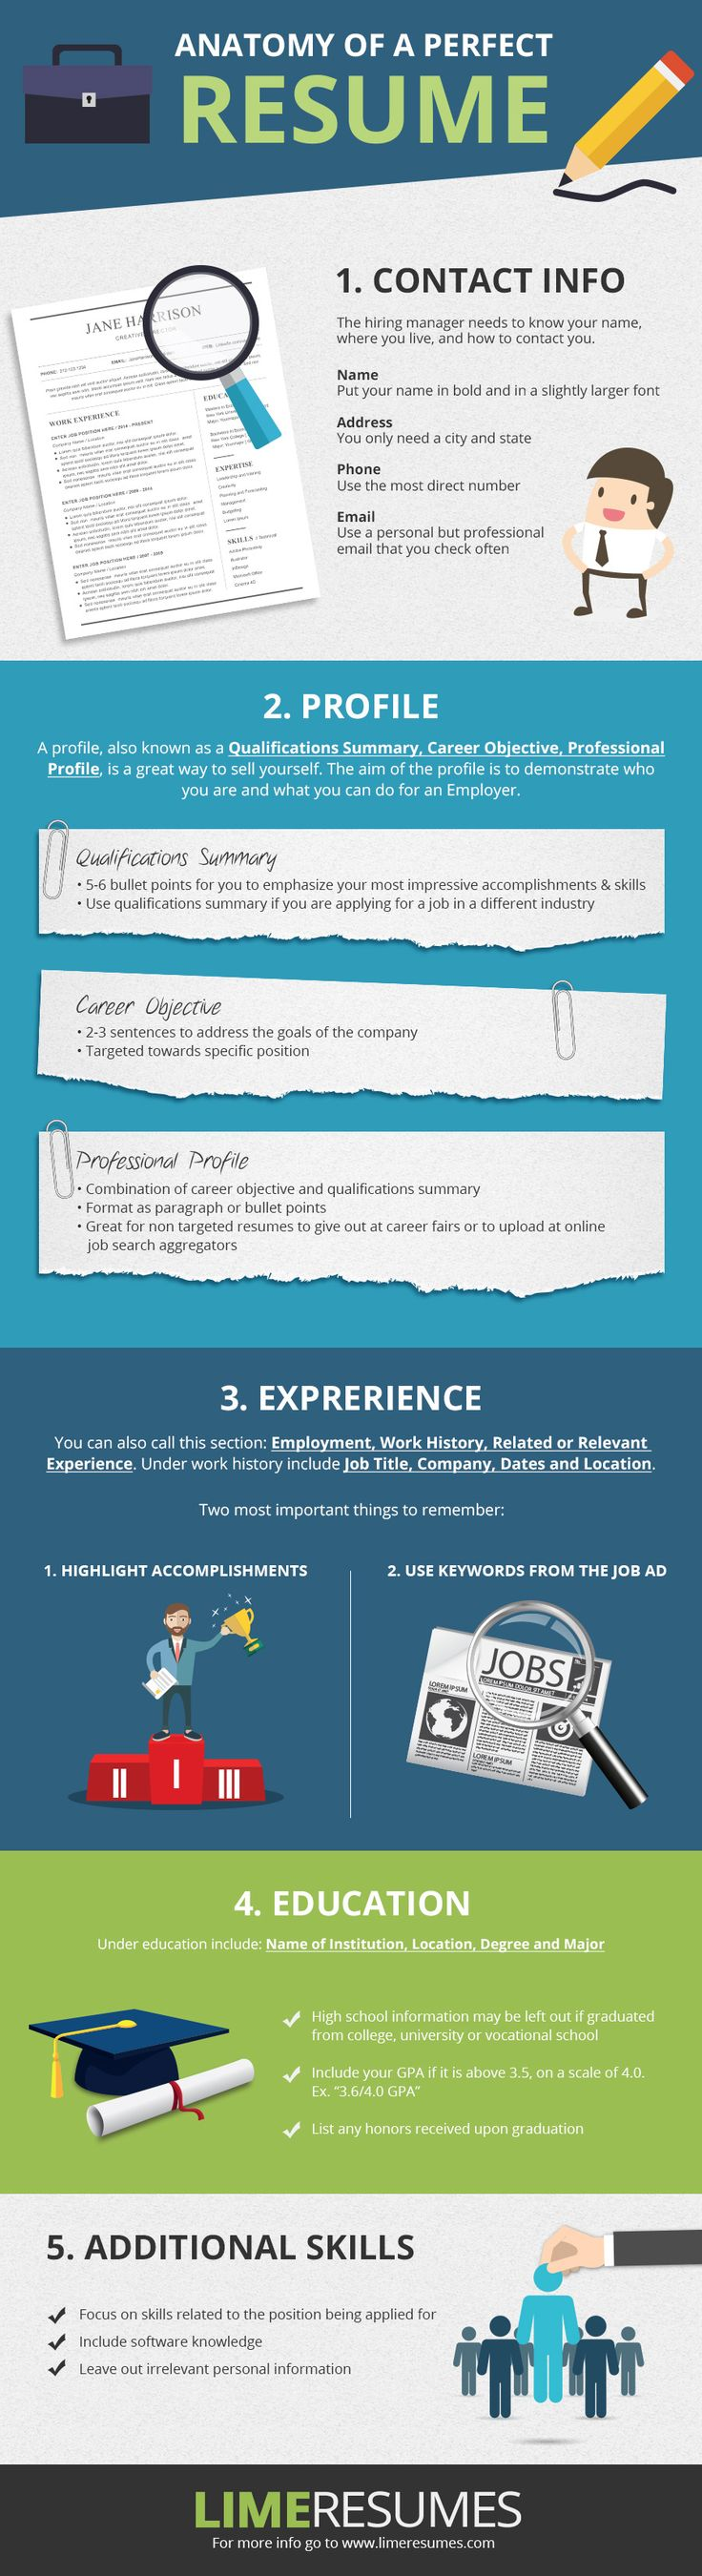 Anatomy of a perfect resume - Infographic on how to put together a resume for any industry.